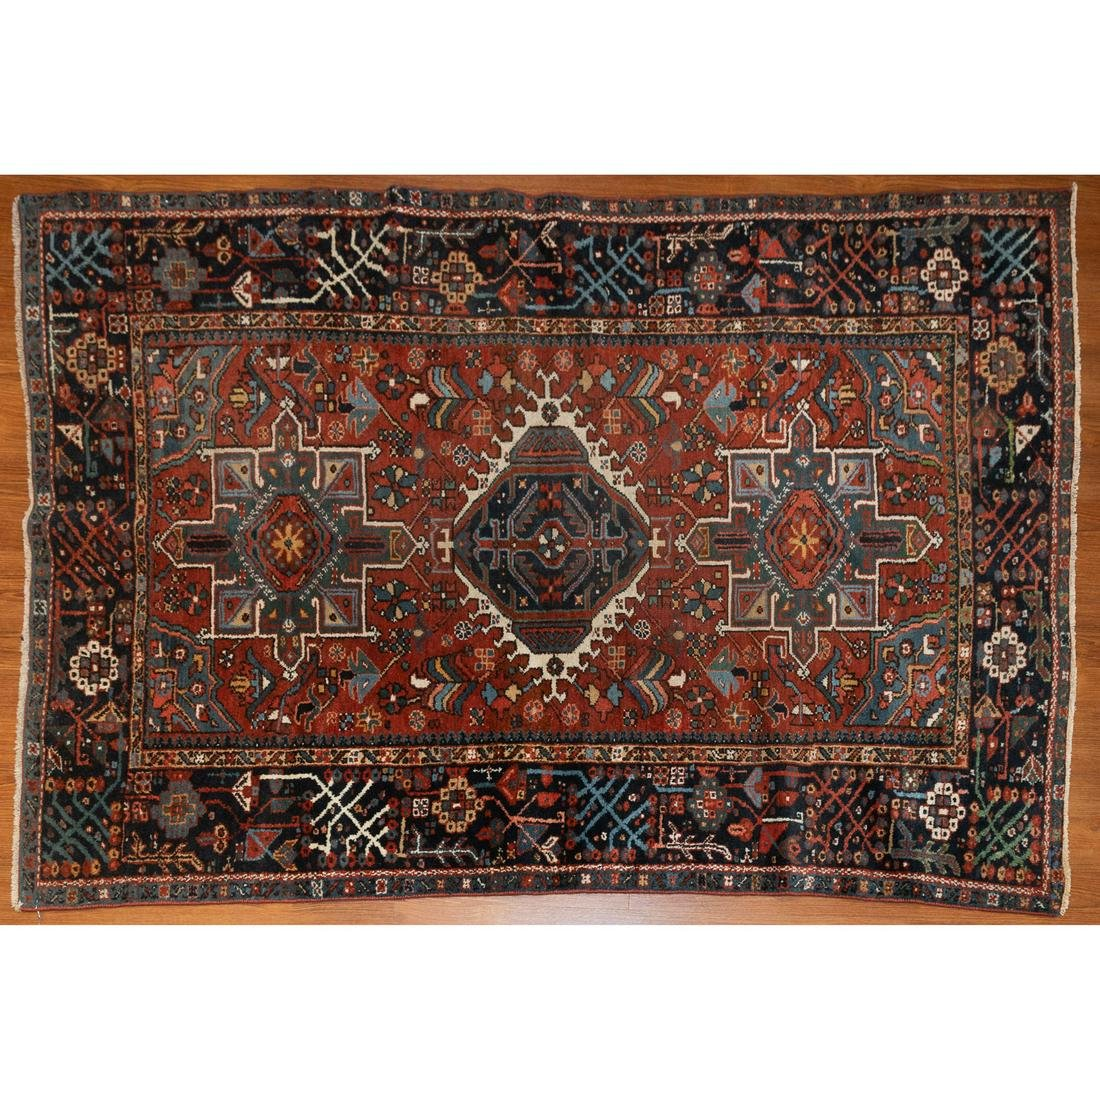 Semi-Antique Karaja Rug, Persia, 4.7 x 6.1